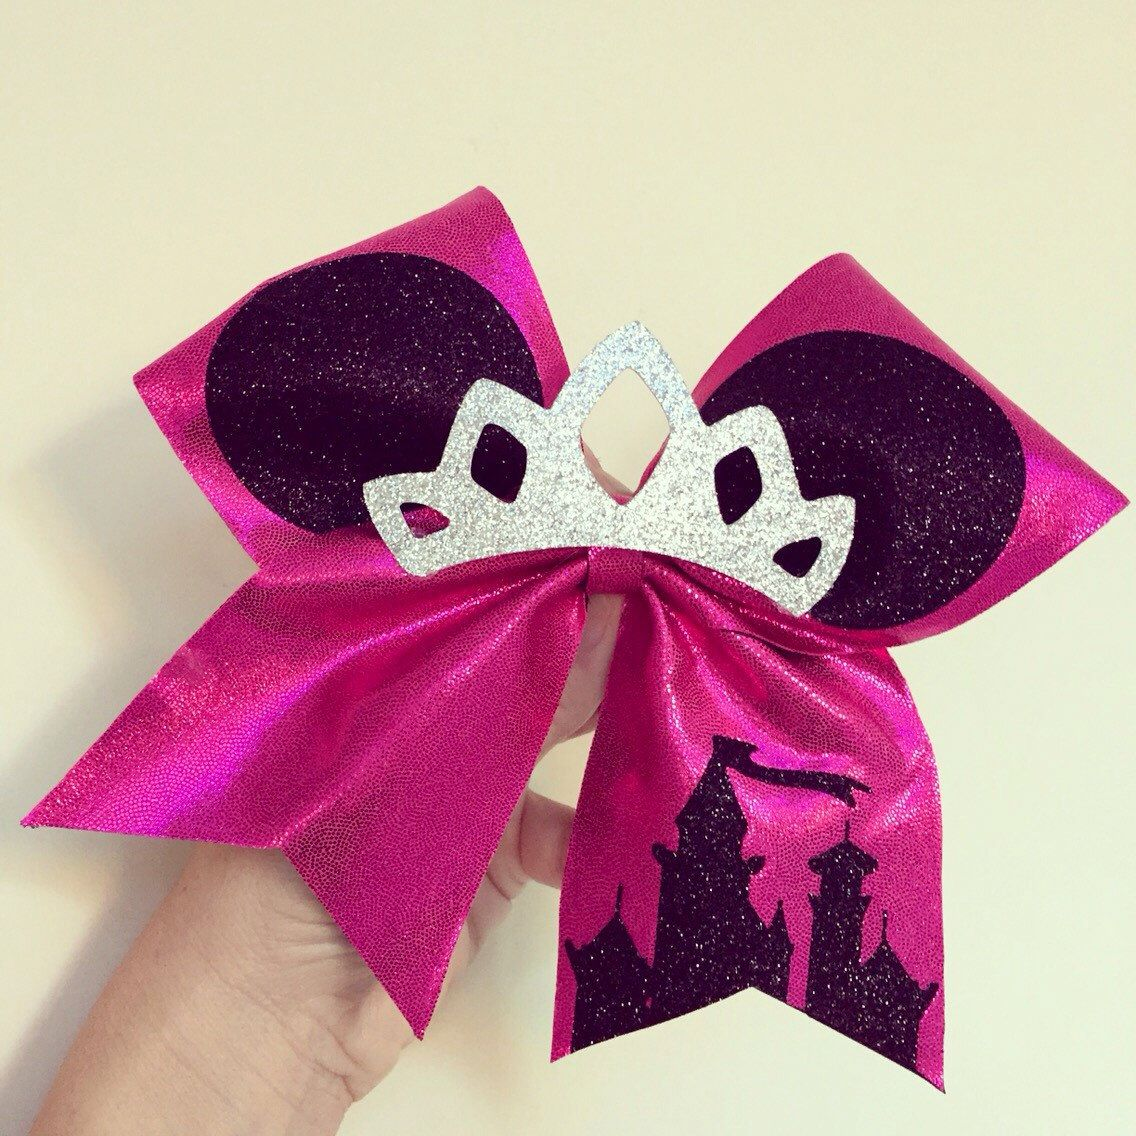 Cheer bow holder for cheer bows and hair bows cheer bow hanger - Princess Minnie Mouse Glitter Tiara Cheer Bow Disney Castle Pink Spandex By Talktothebow On Etsy Https Disney Cheer Bowscheer Hair